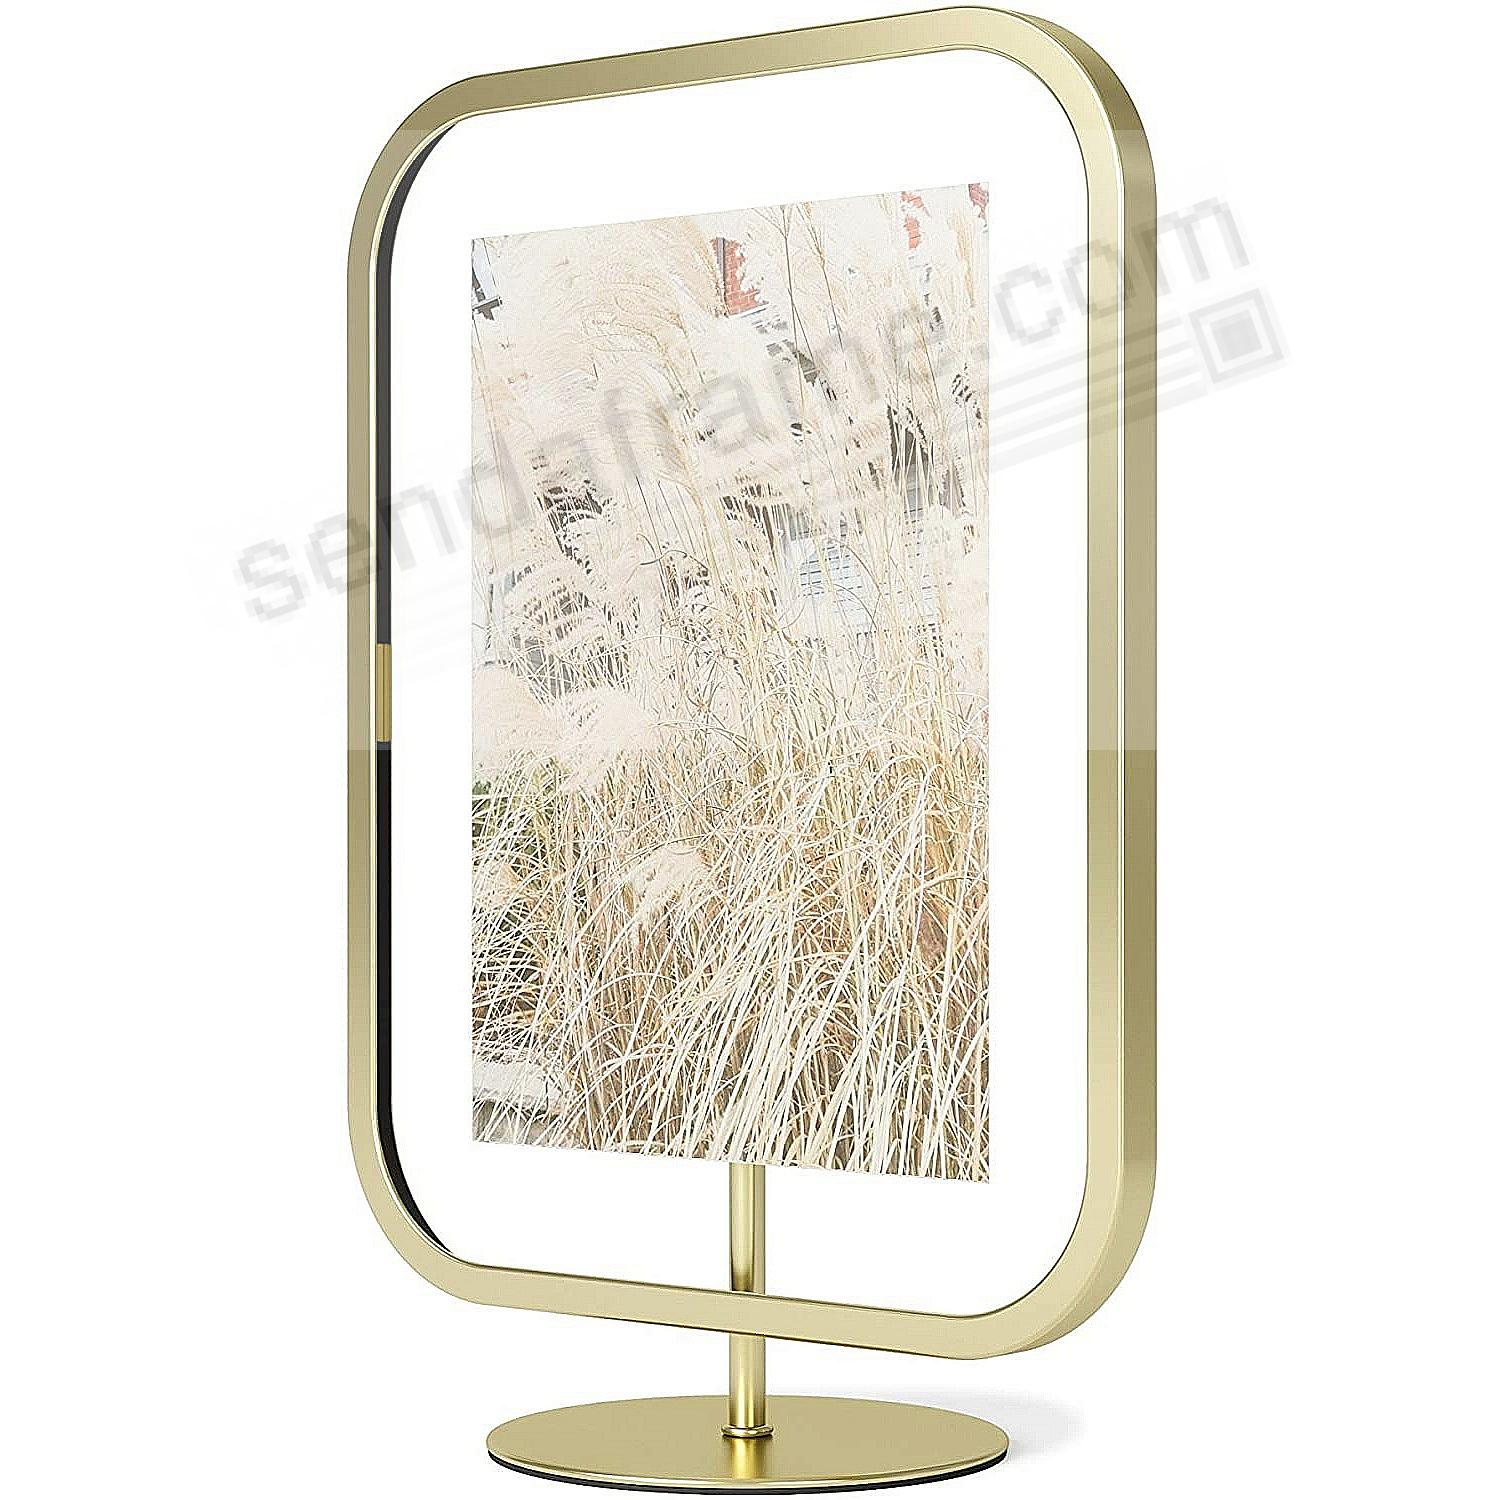 The INFINITY SQROUND Photo Display Brass 5x7 frame by Umbra®